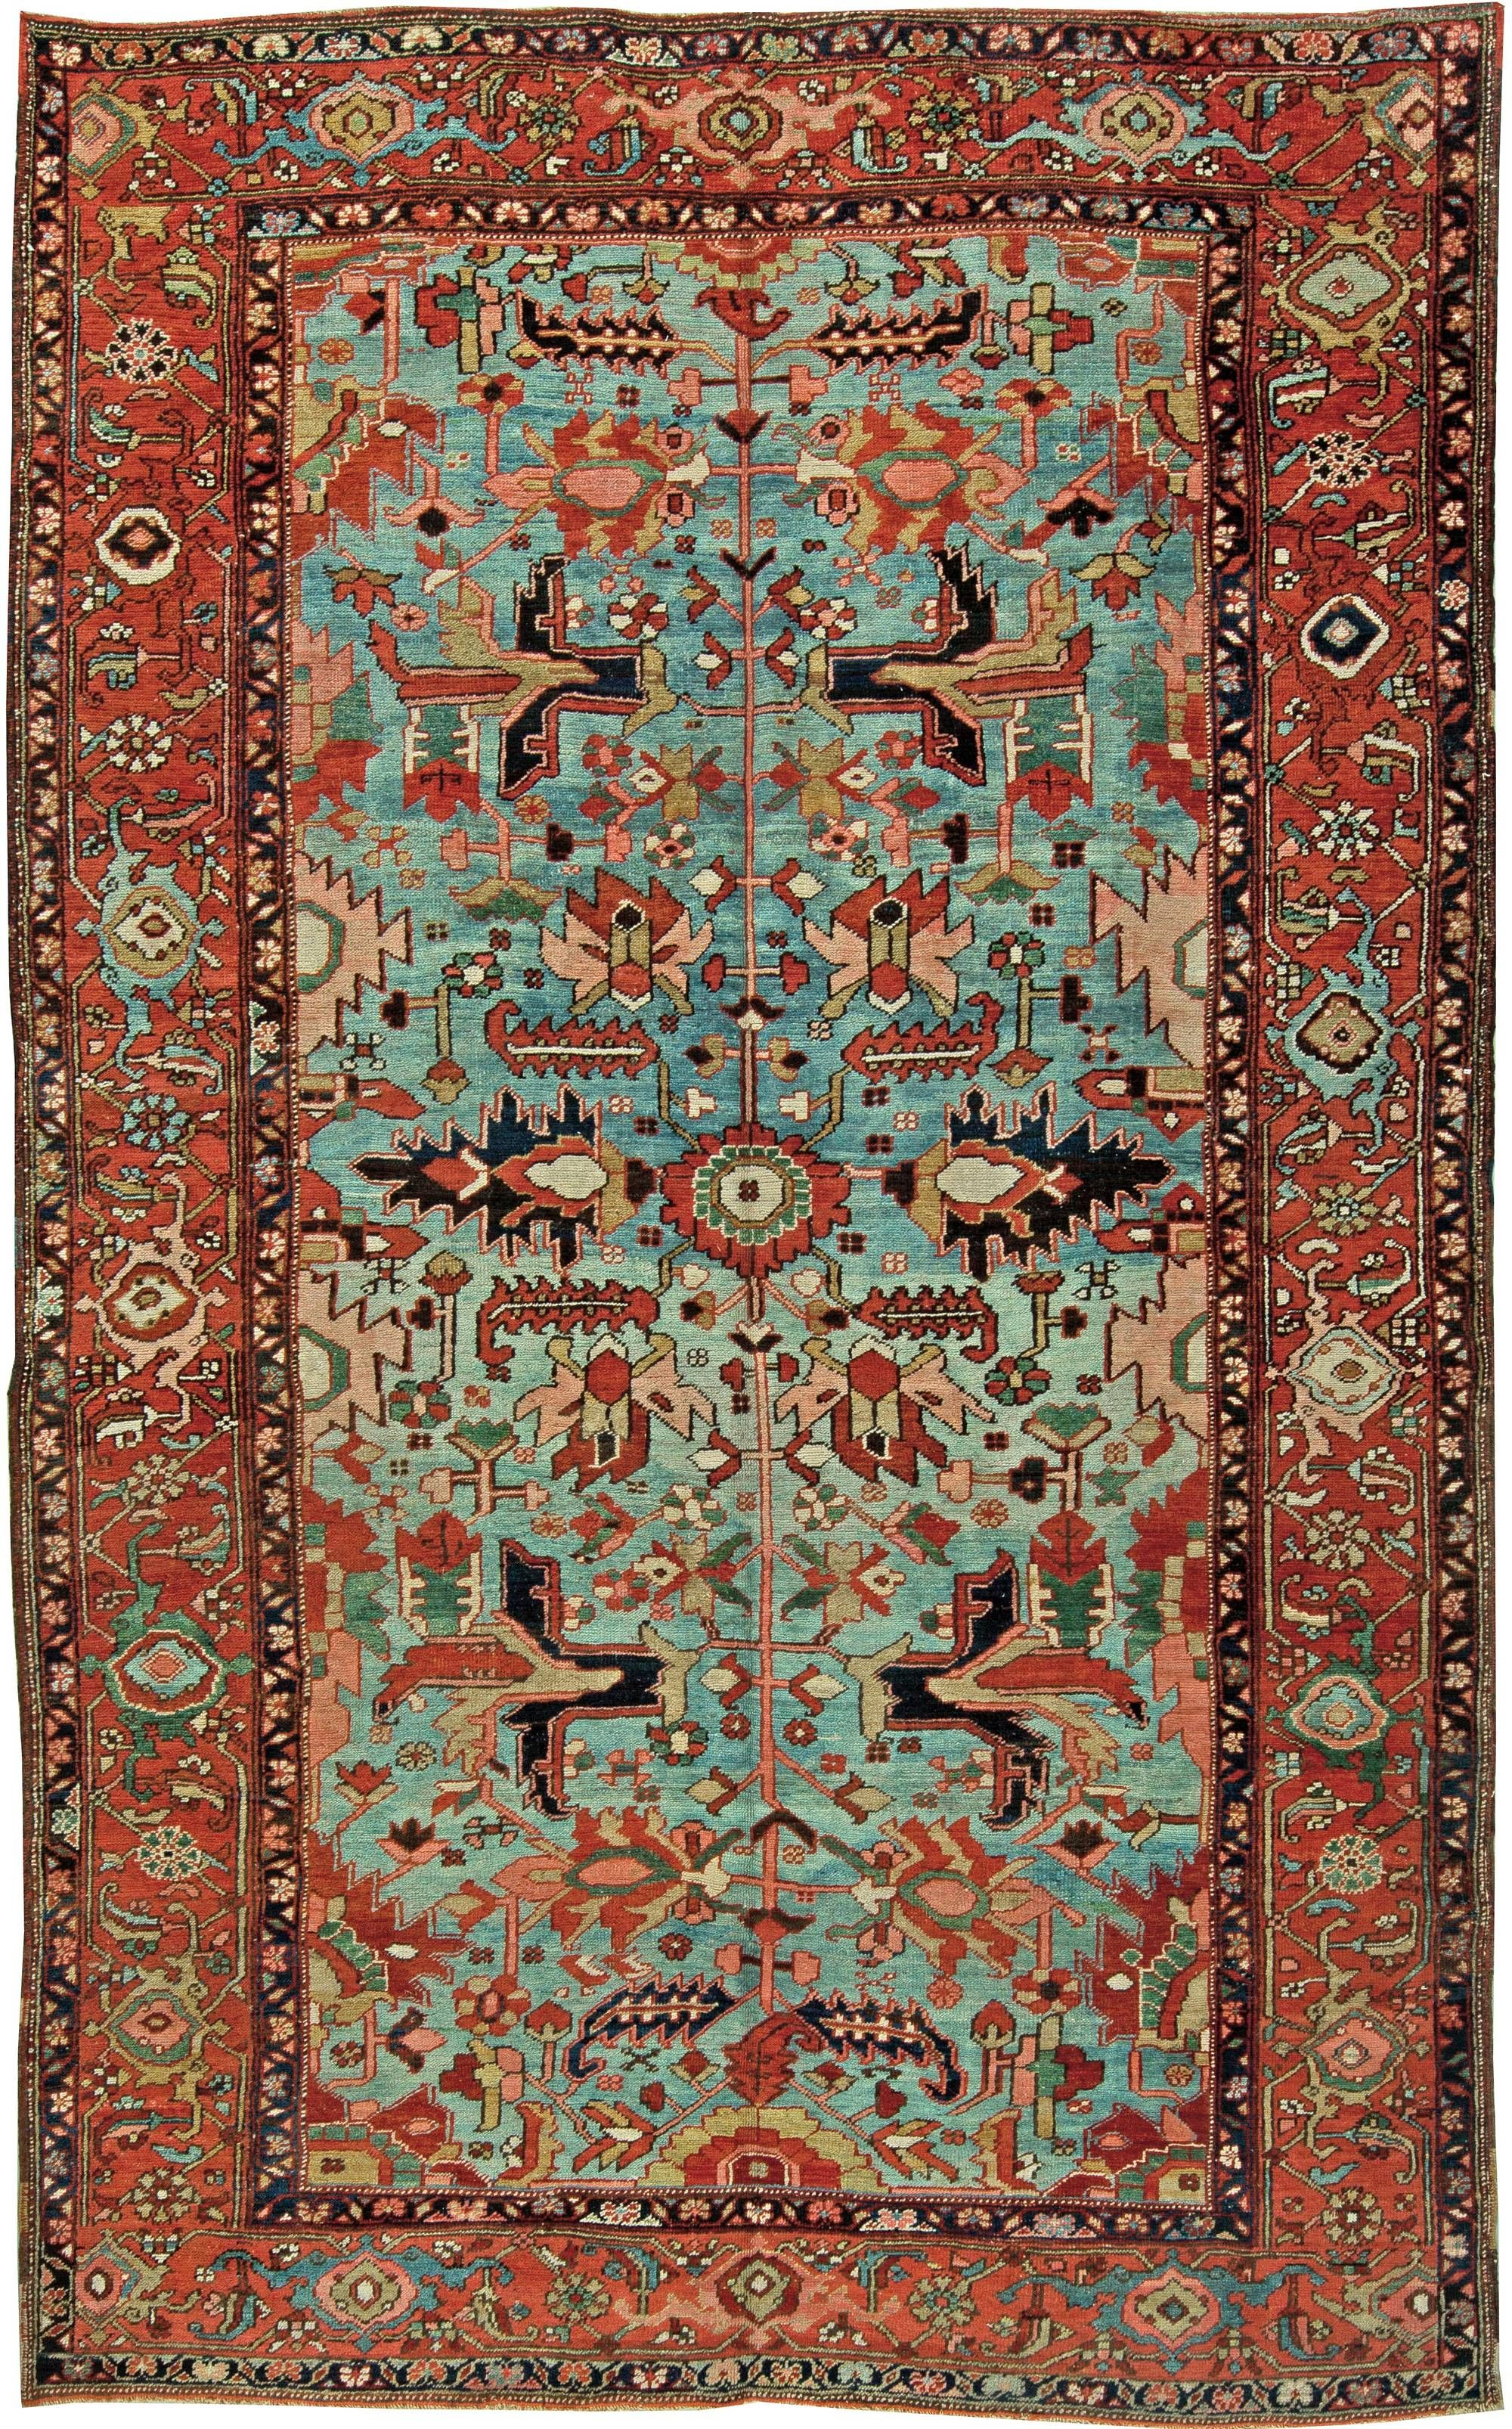 Antique persian heriz rug bb2402 by doris leslie blau for Alfombras persas